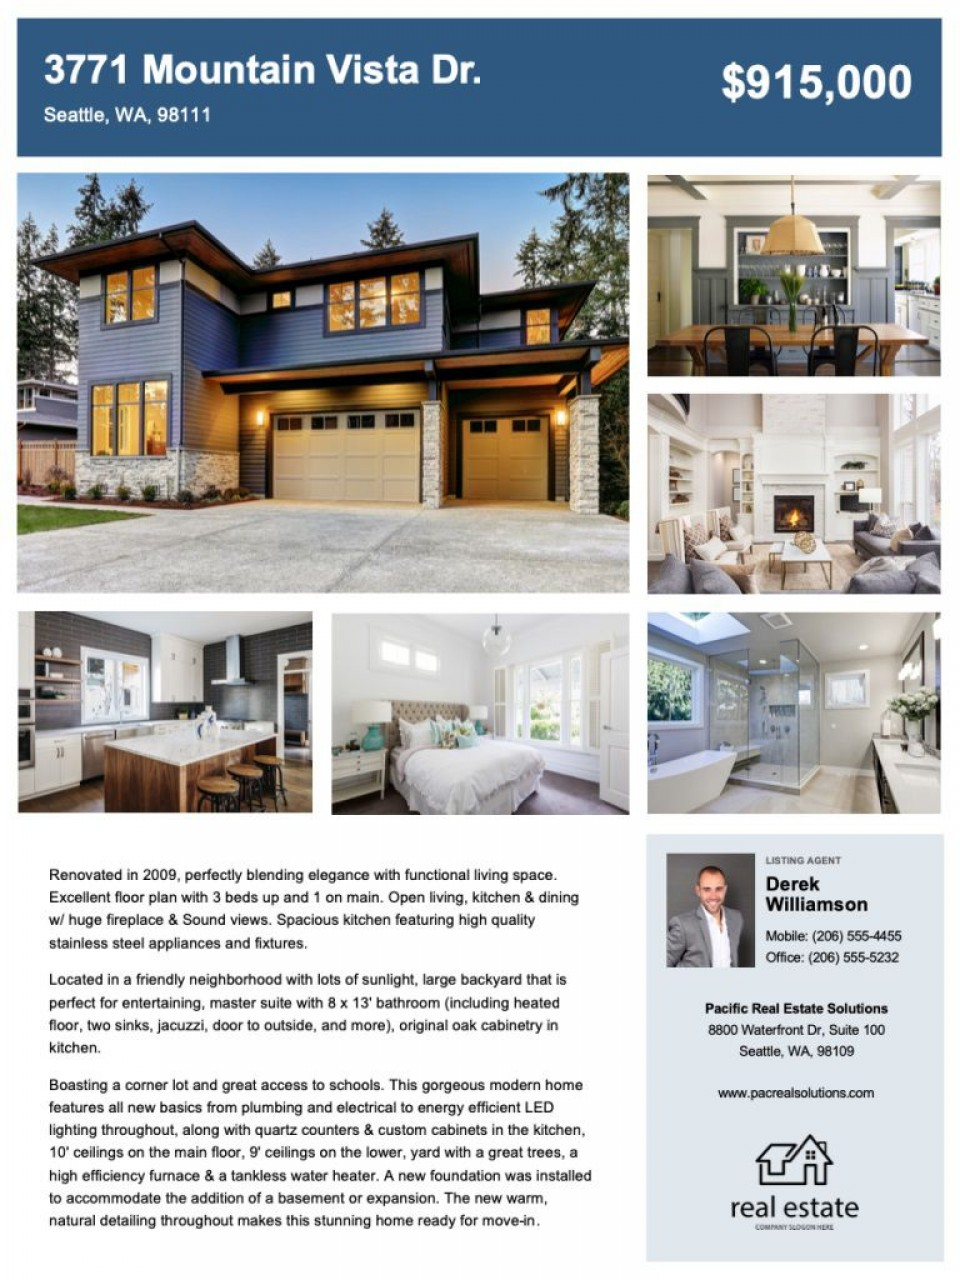 009 Striking House For Sale Flyer Template Inspiration  Free Real Estate Example By Owner960